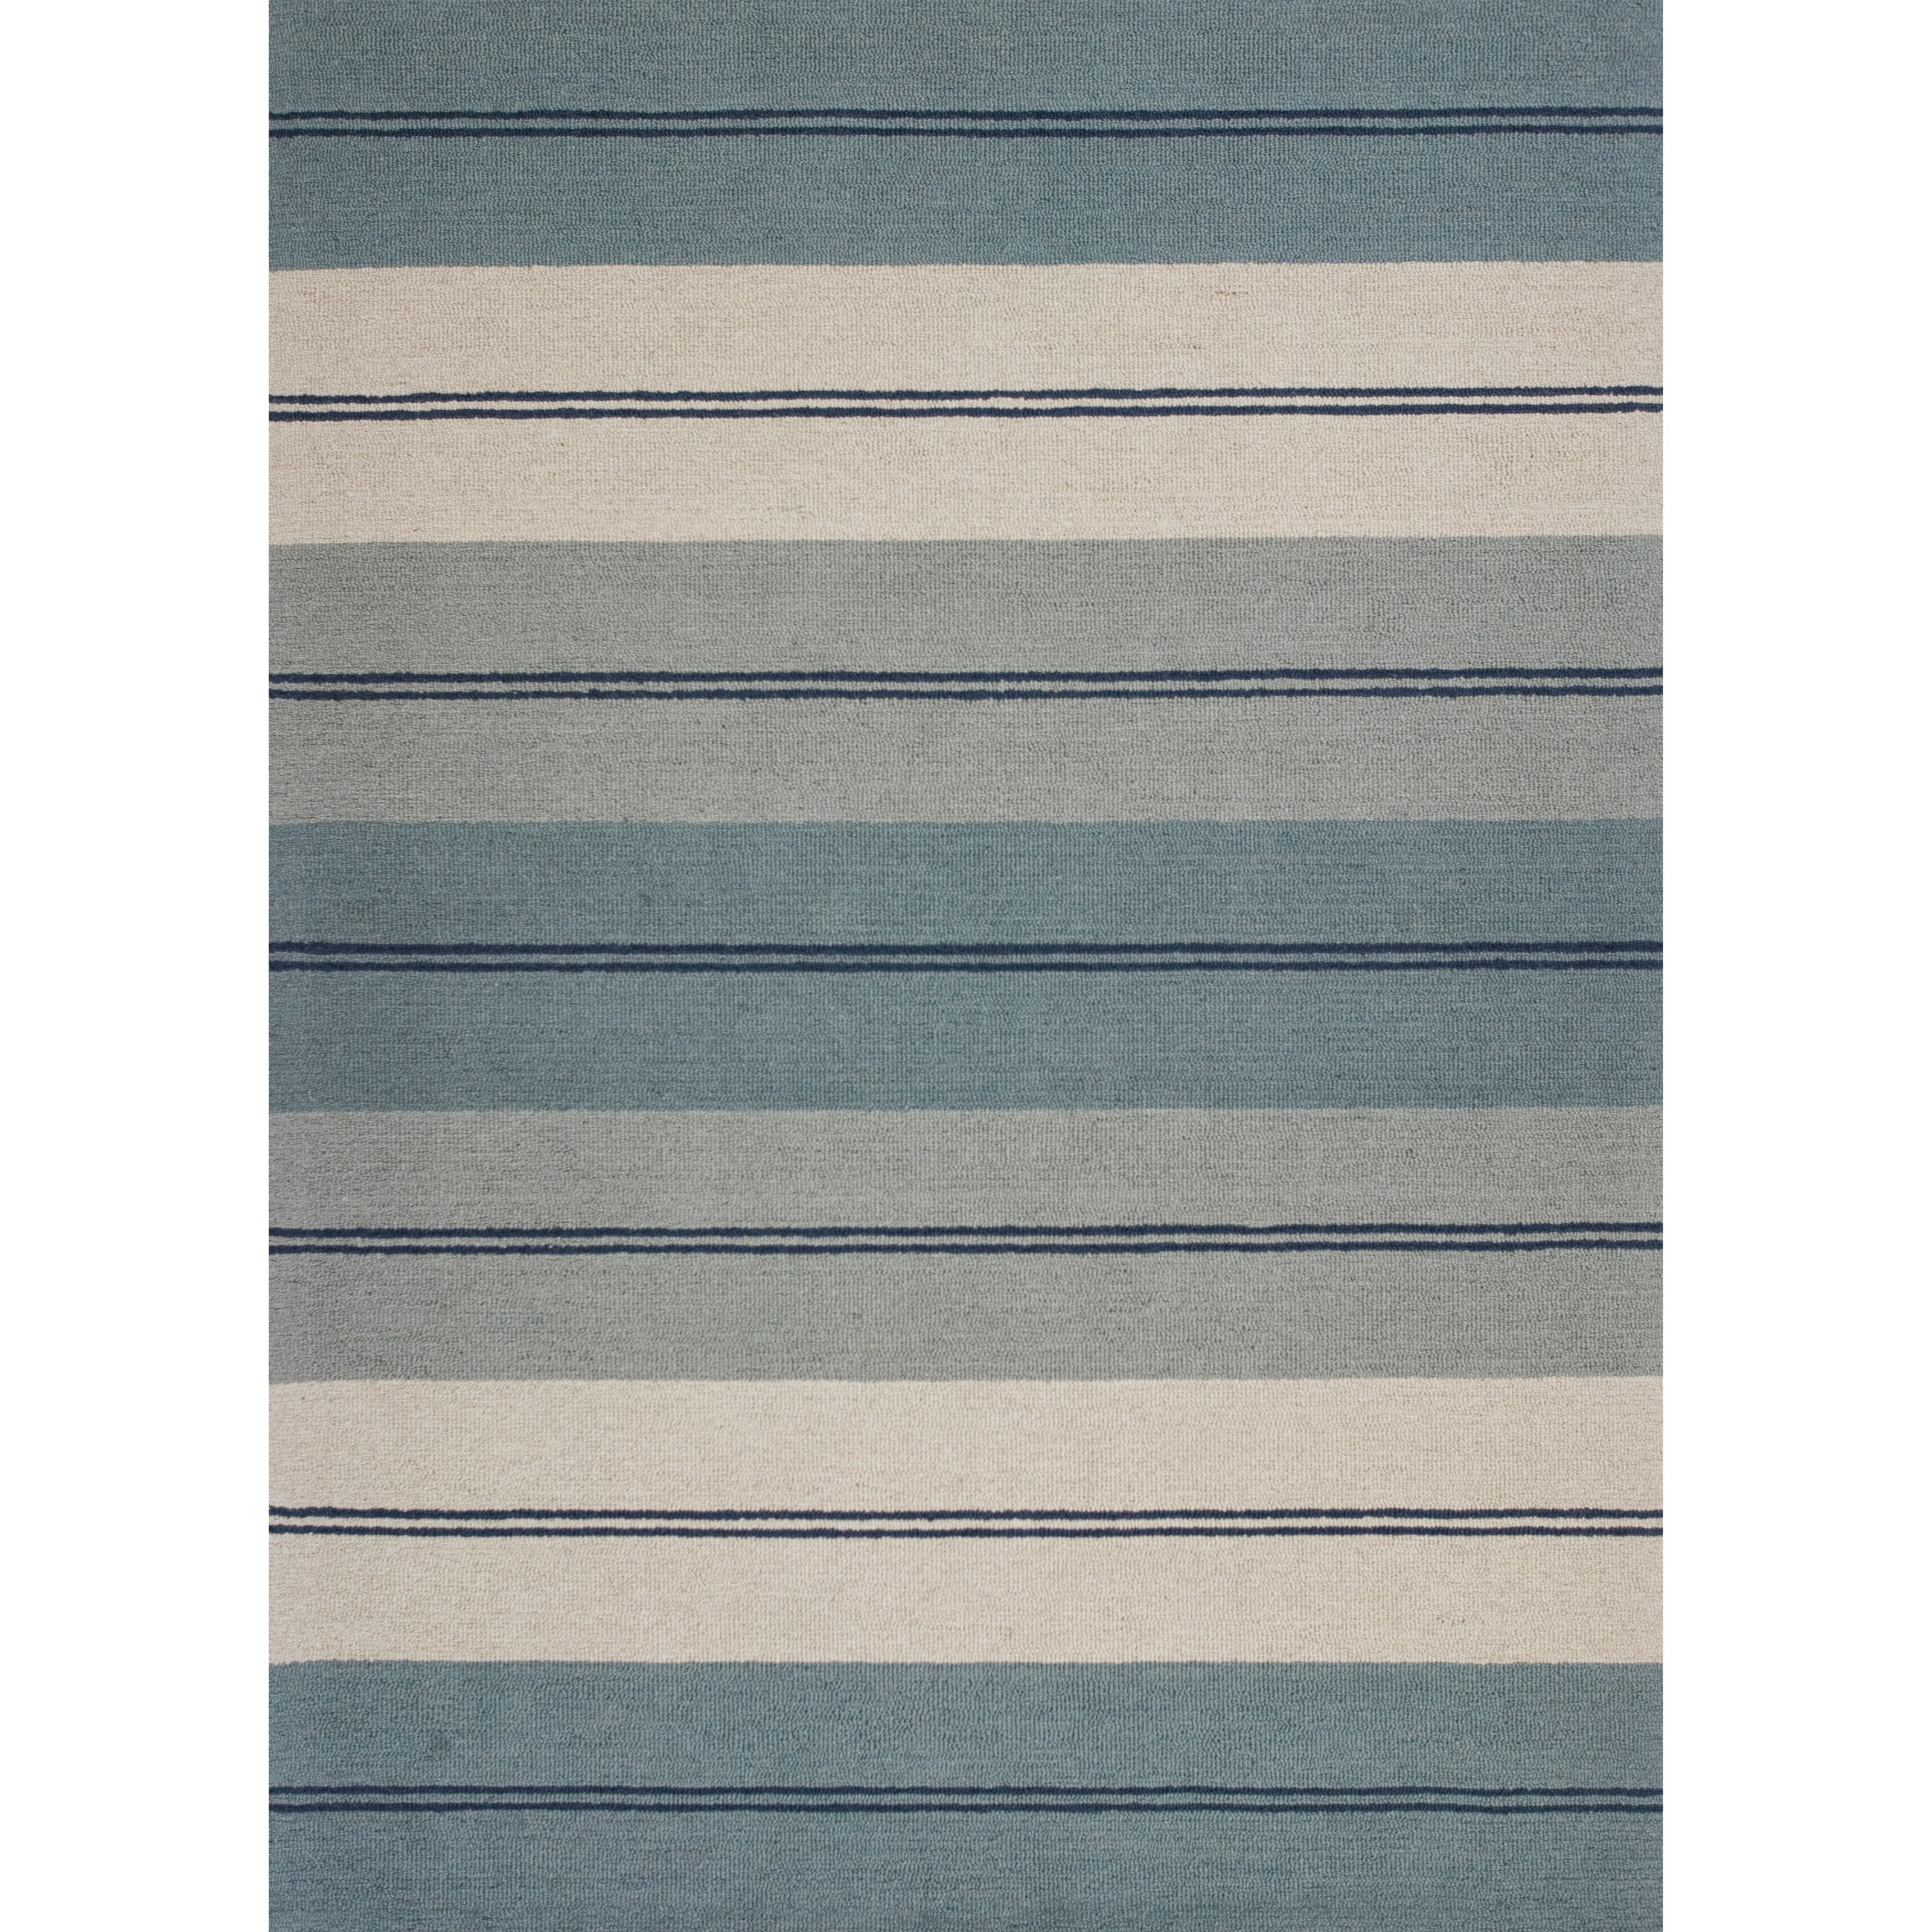 8' X 10' Ivory/Blue Visions Area Rug